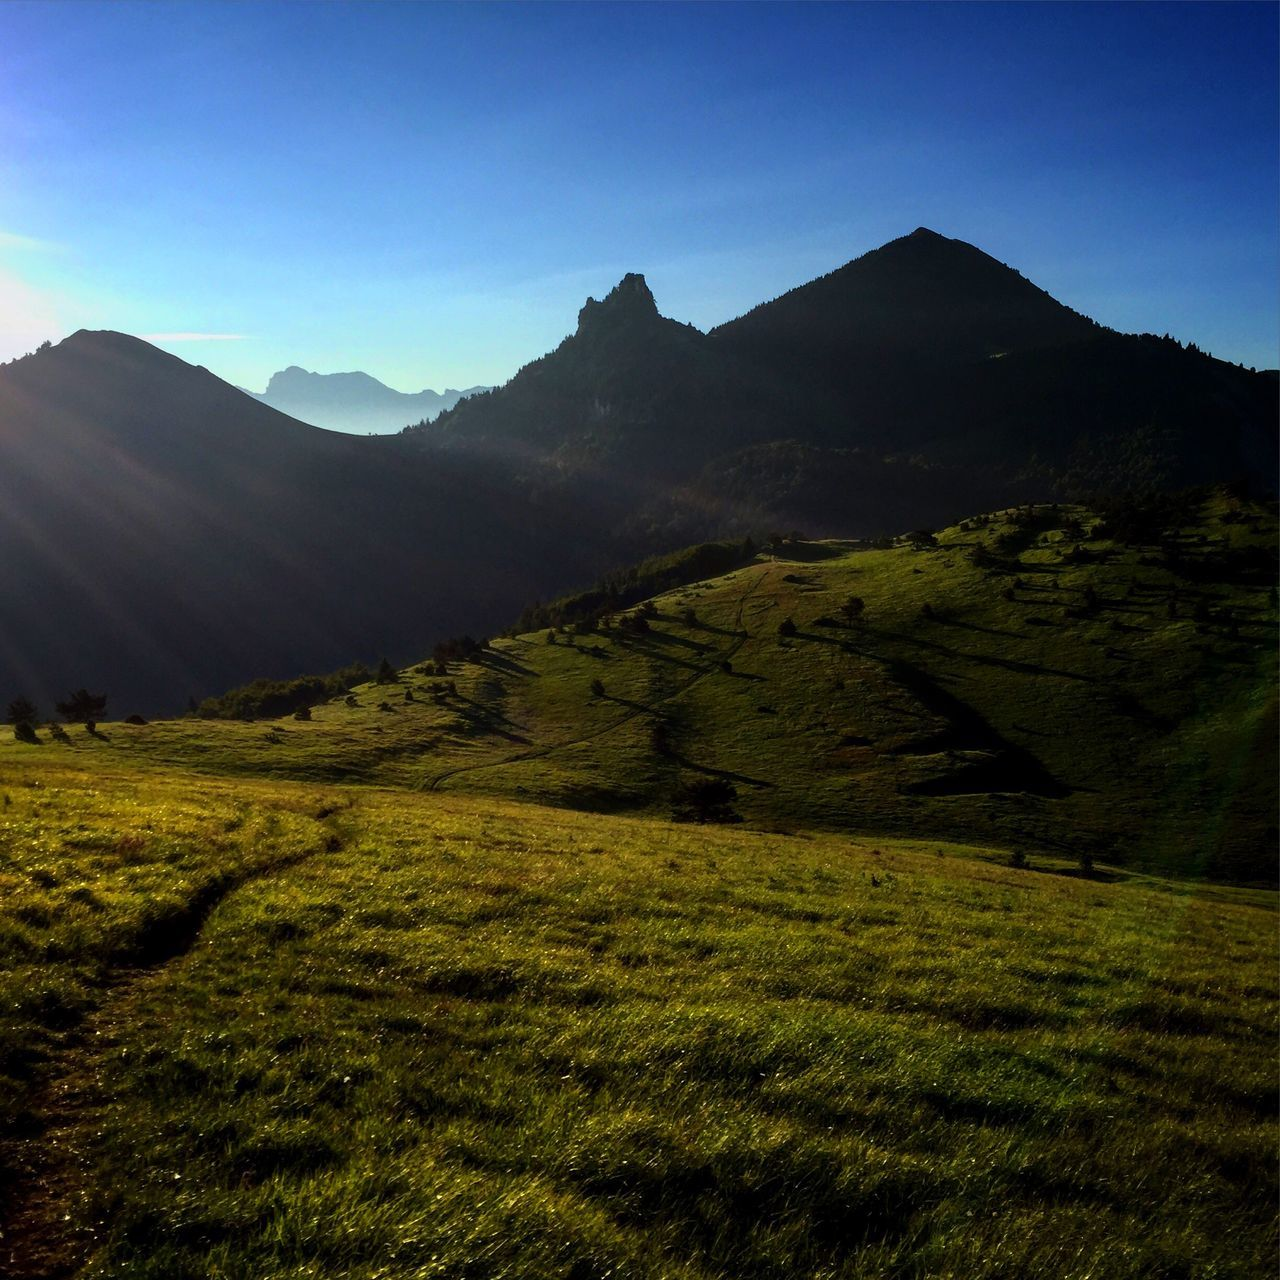 mountain, nature, tranquil scene, tranquility, beauty in nature, scenics, landscape, mountain range, clear sky, no people, day, grass, outdoors, sky, slope